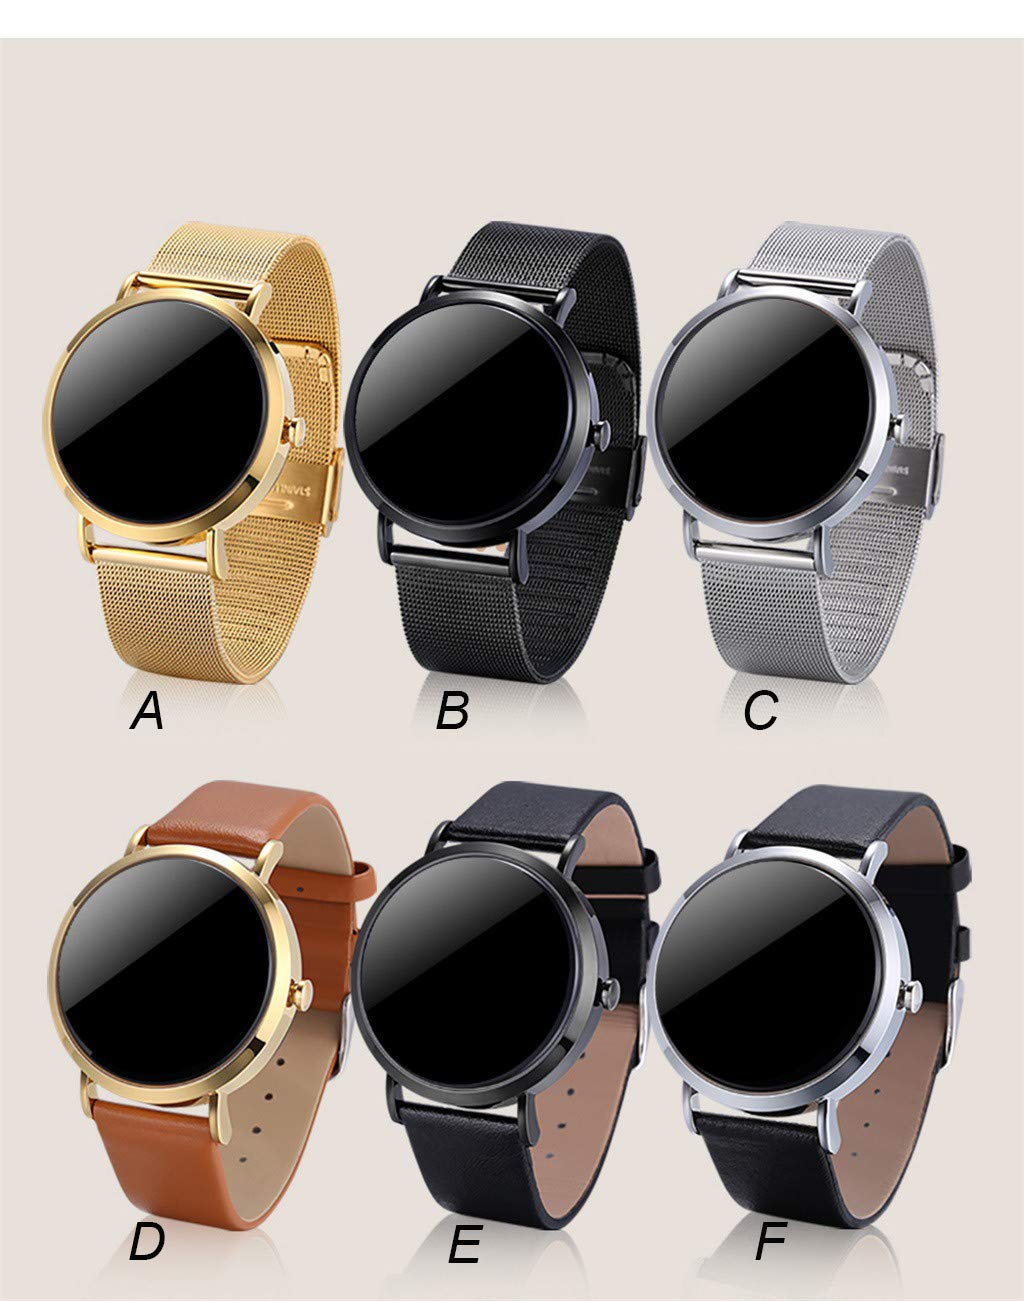 For iOS Android, Waterproof Sport Smart Watch Fitness Activity Blood Pressure Heart Rate Sleep Monitoring Smart Bracelet (A) by YNAA (Image #5)